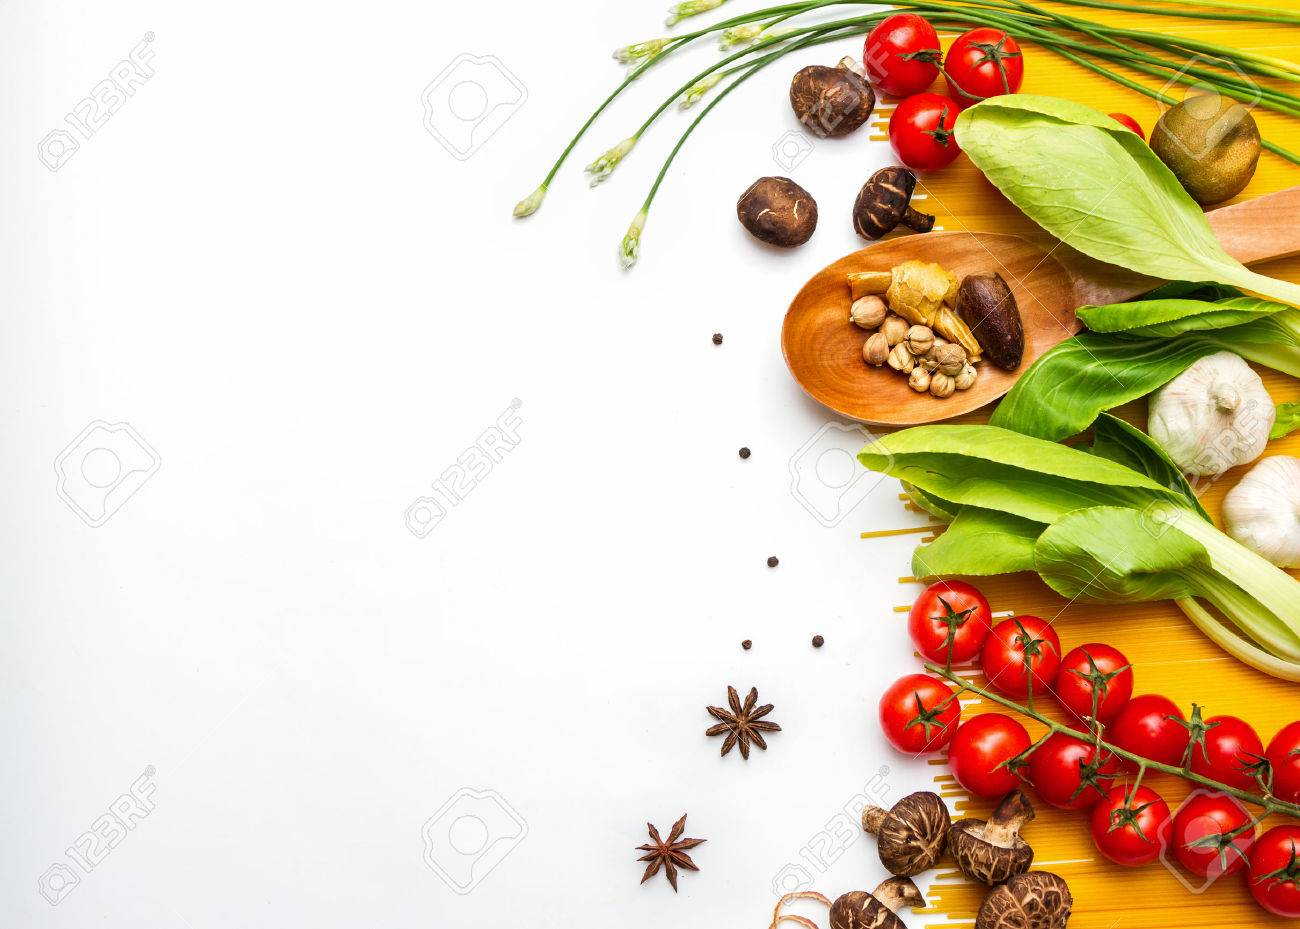 Food and spices herb for cooking background and design. Stock Photo - 42070987